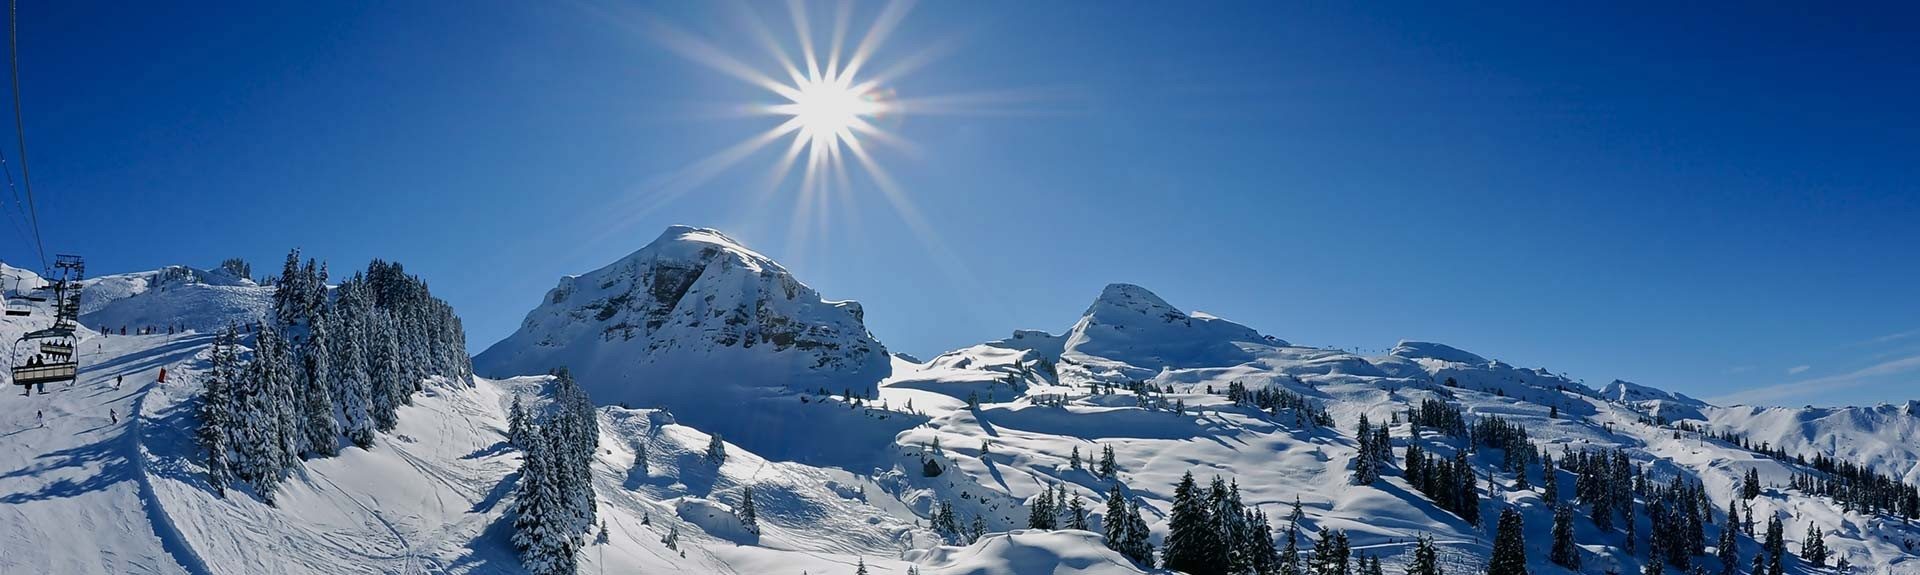 domaine-skiable-chatel